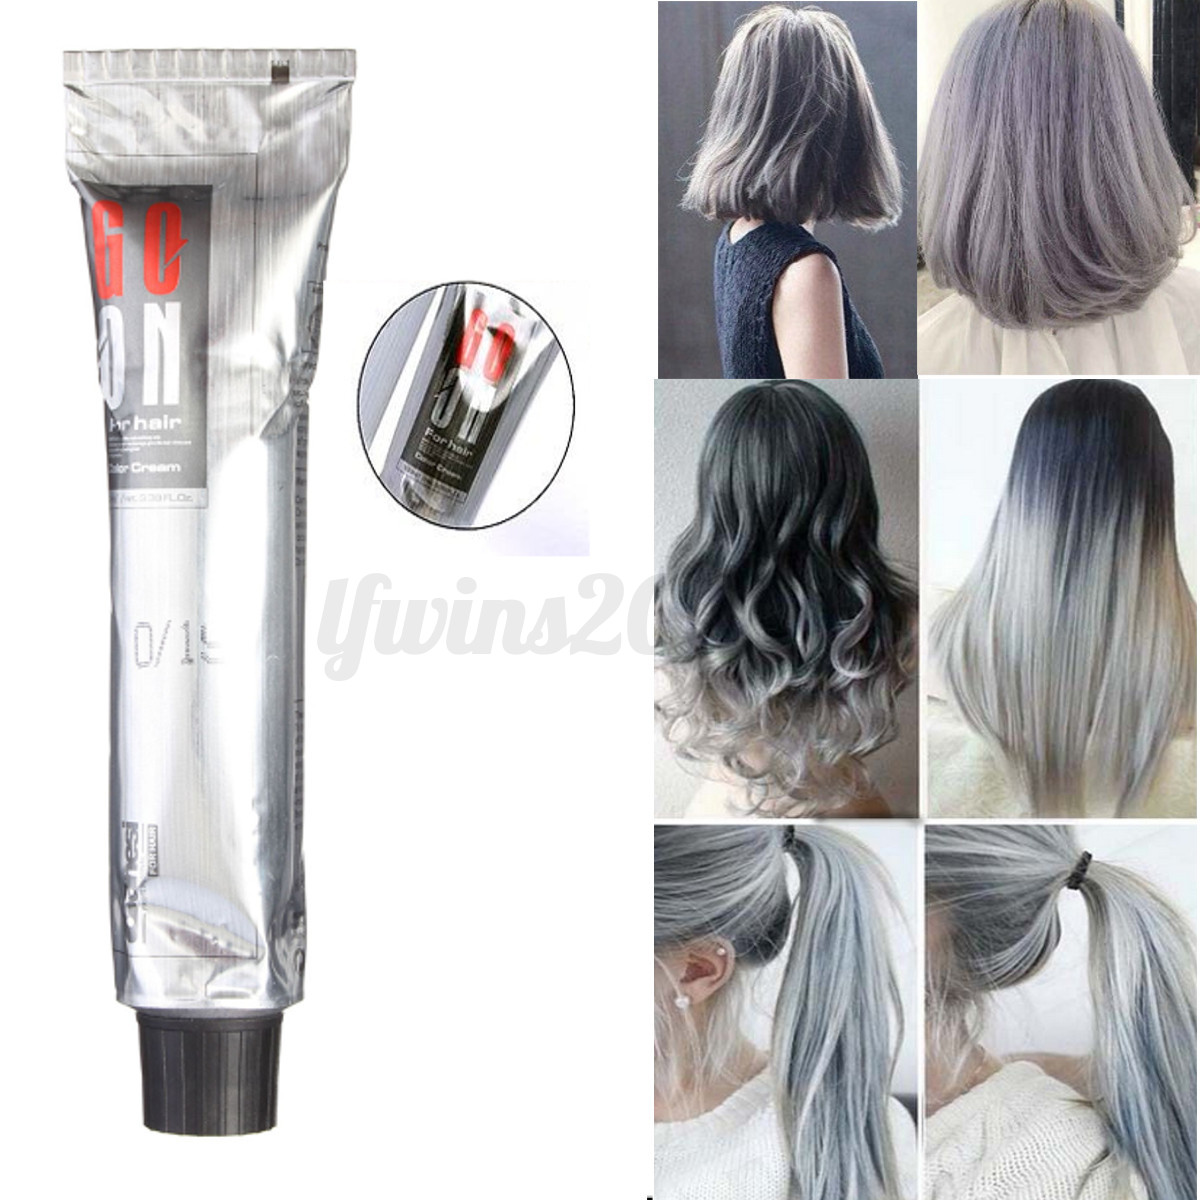 couleur blanc gris argent cr me coloration cheveux teinture permanent outil kit ebay. Black Bedroom Furniture Sets. Home Design Ideas